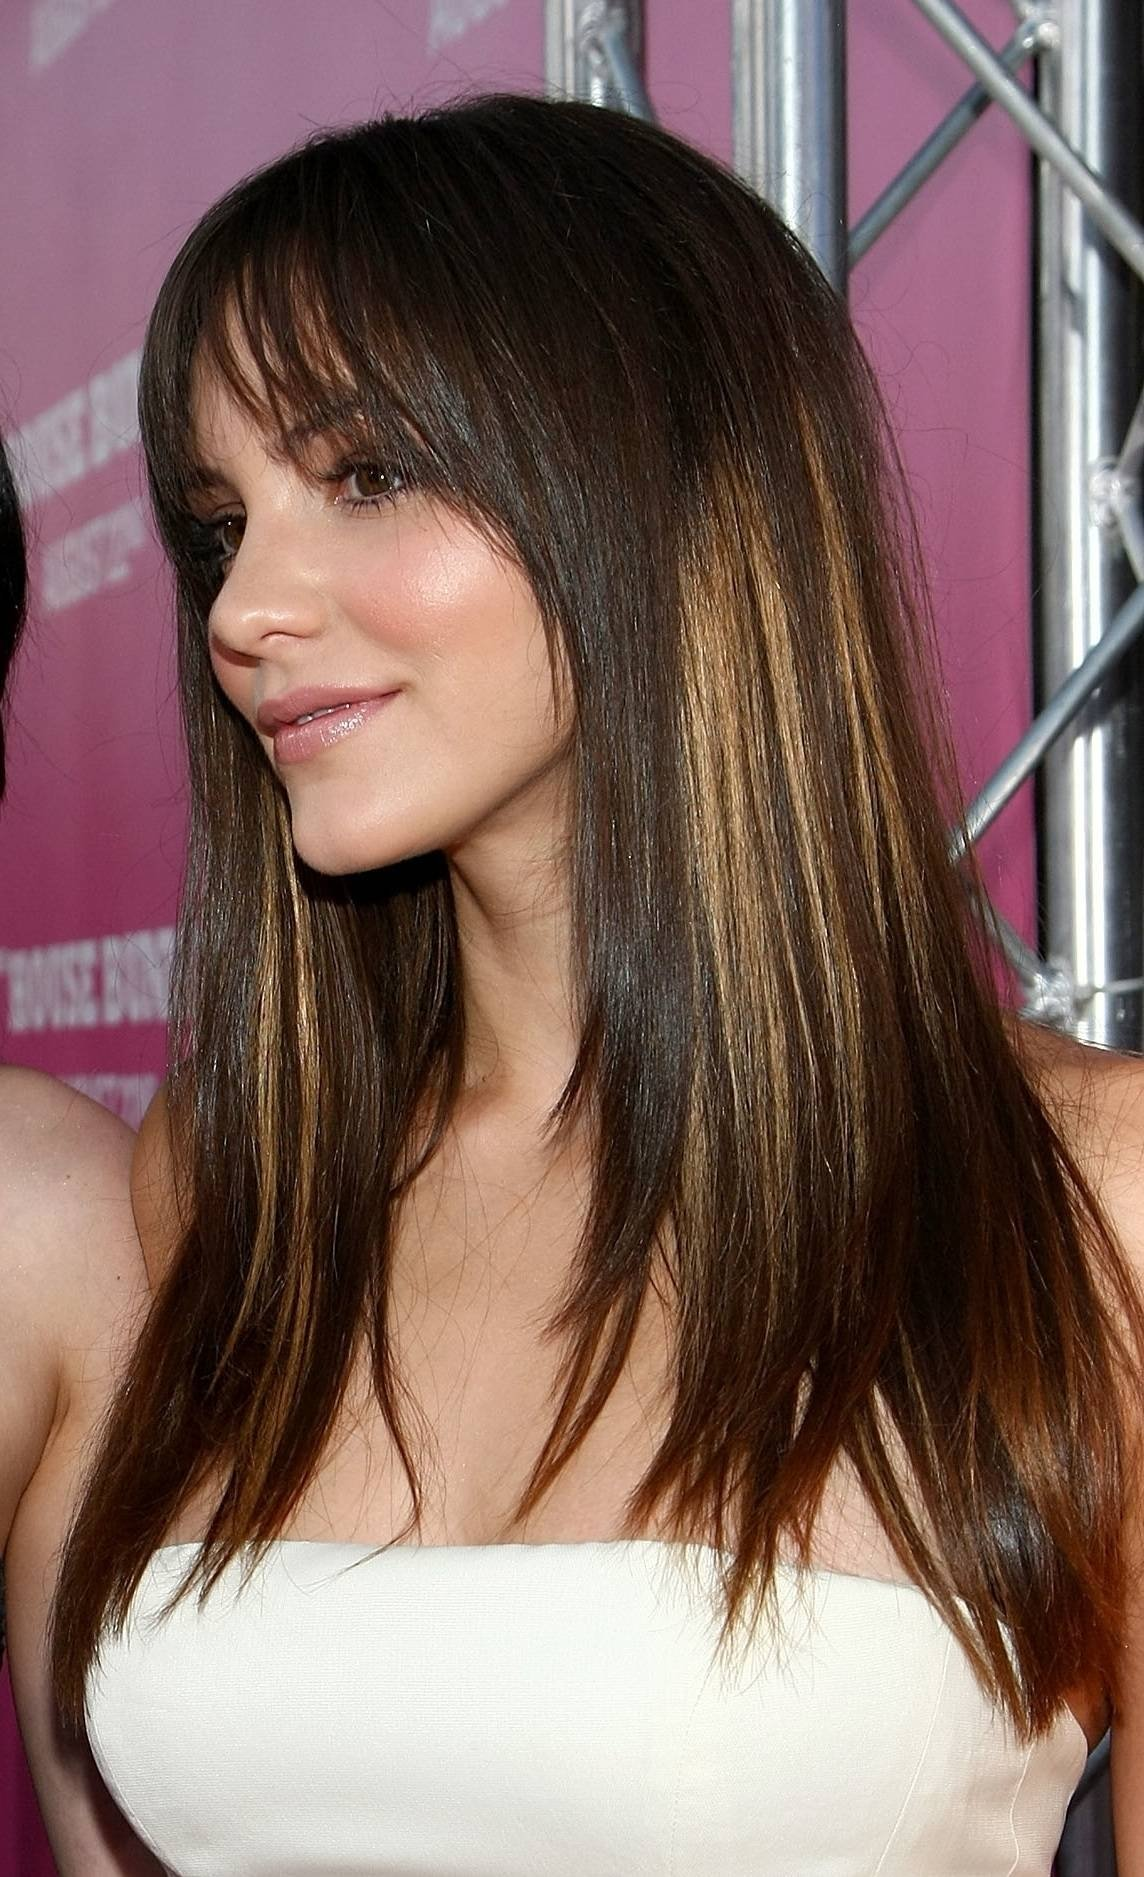 10 Most Recommended Hair Color Ideas For 2013 hair color ideas for brown hair with highlights fashion trends 2020